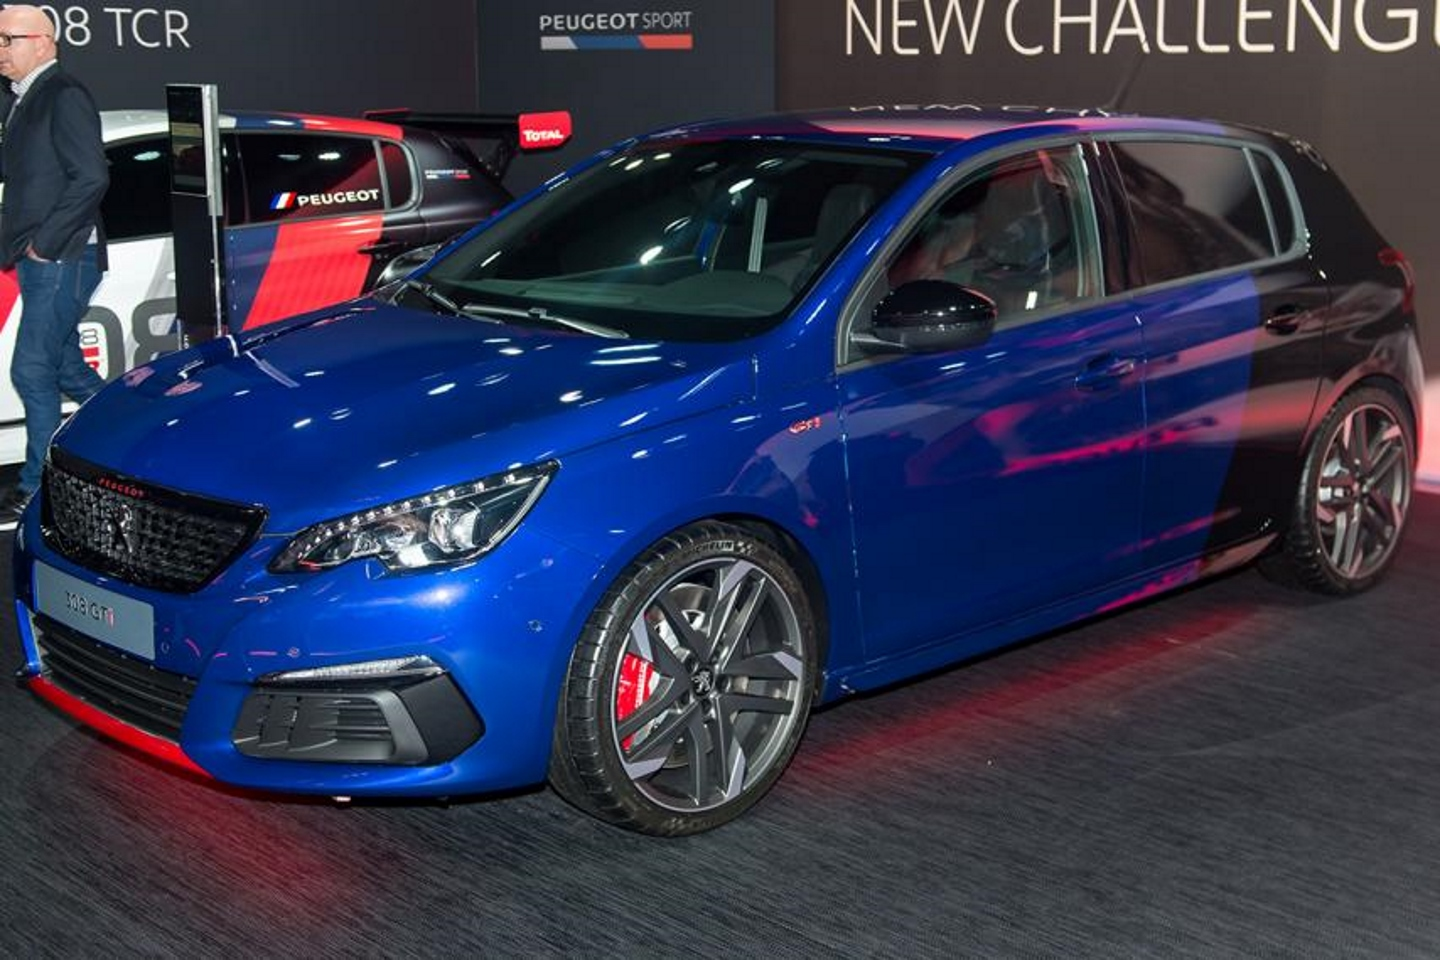 Peugeot 308 GTi. Фото: Robert Hradil/Getty Images